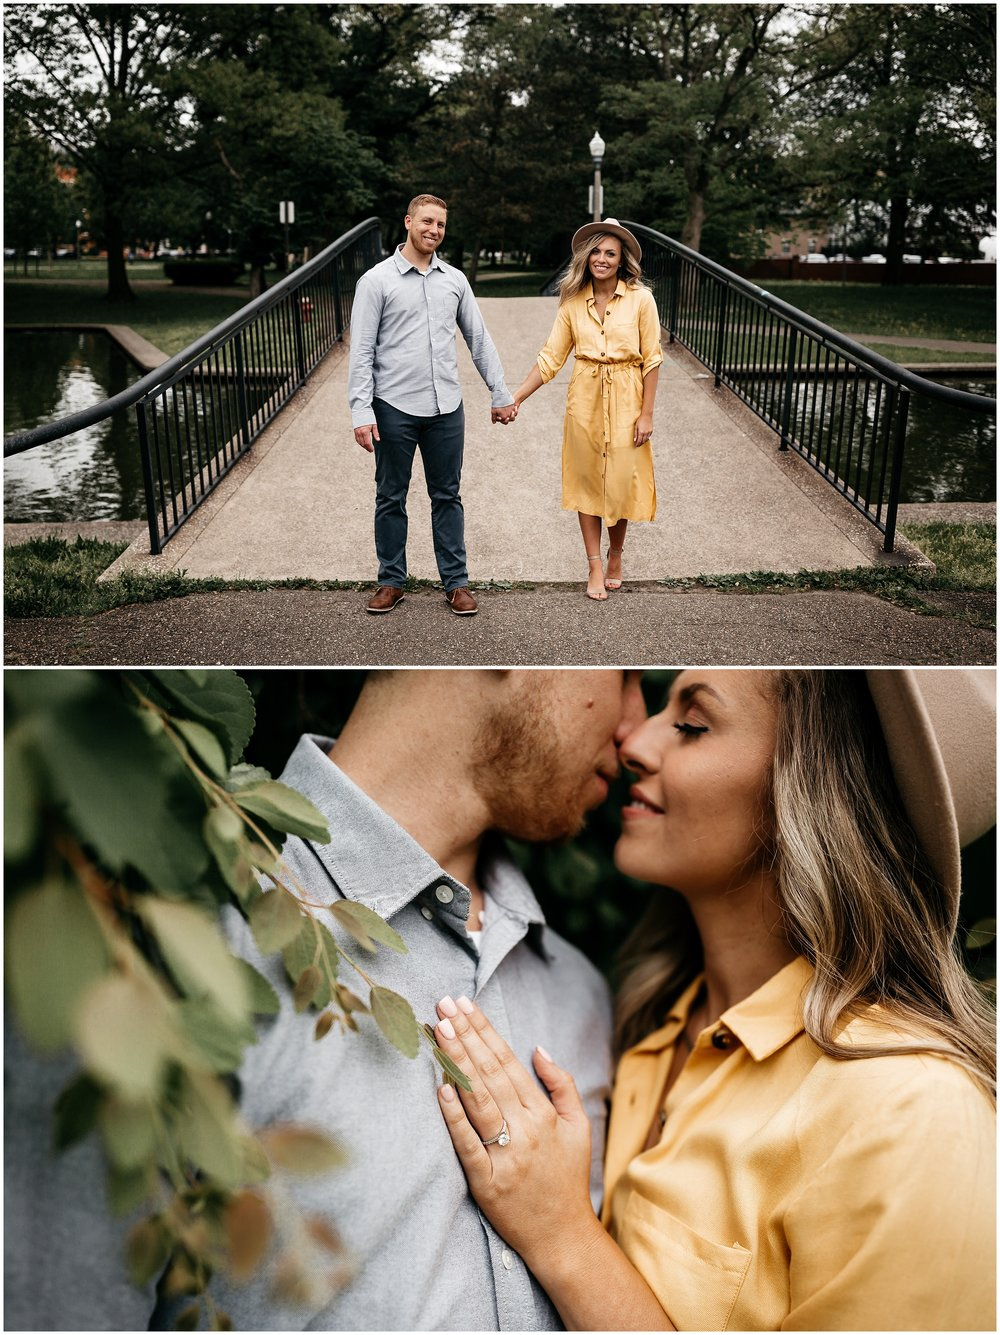 pittsburghengagementphotos_0005.jpg